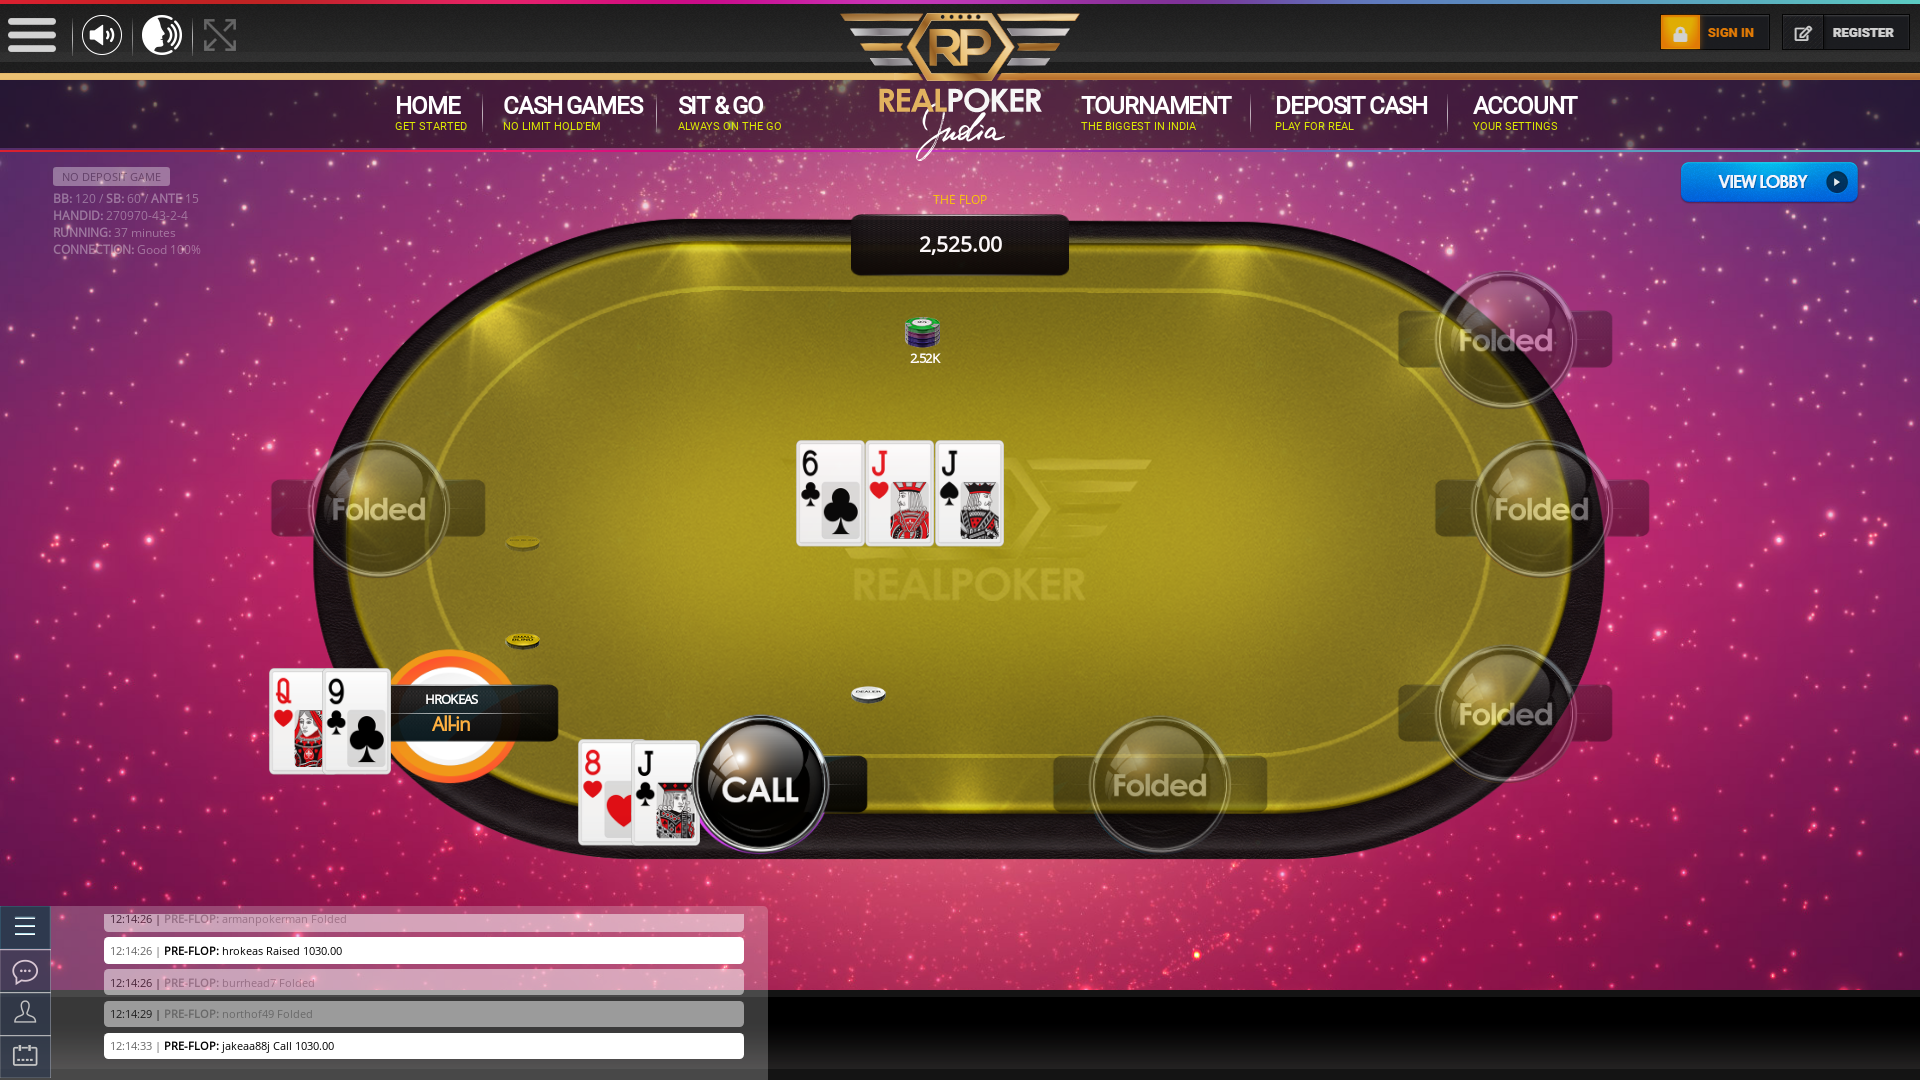 Real Indian poker on a 10 player table in the 36th minute of the game